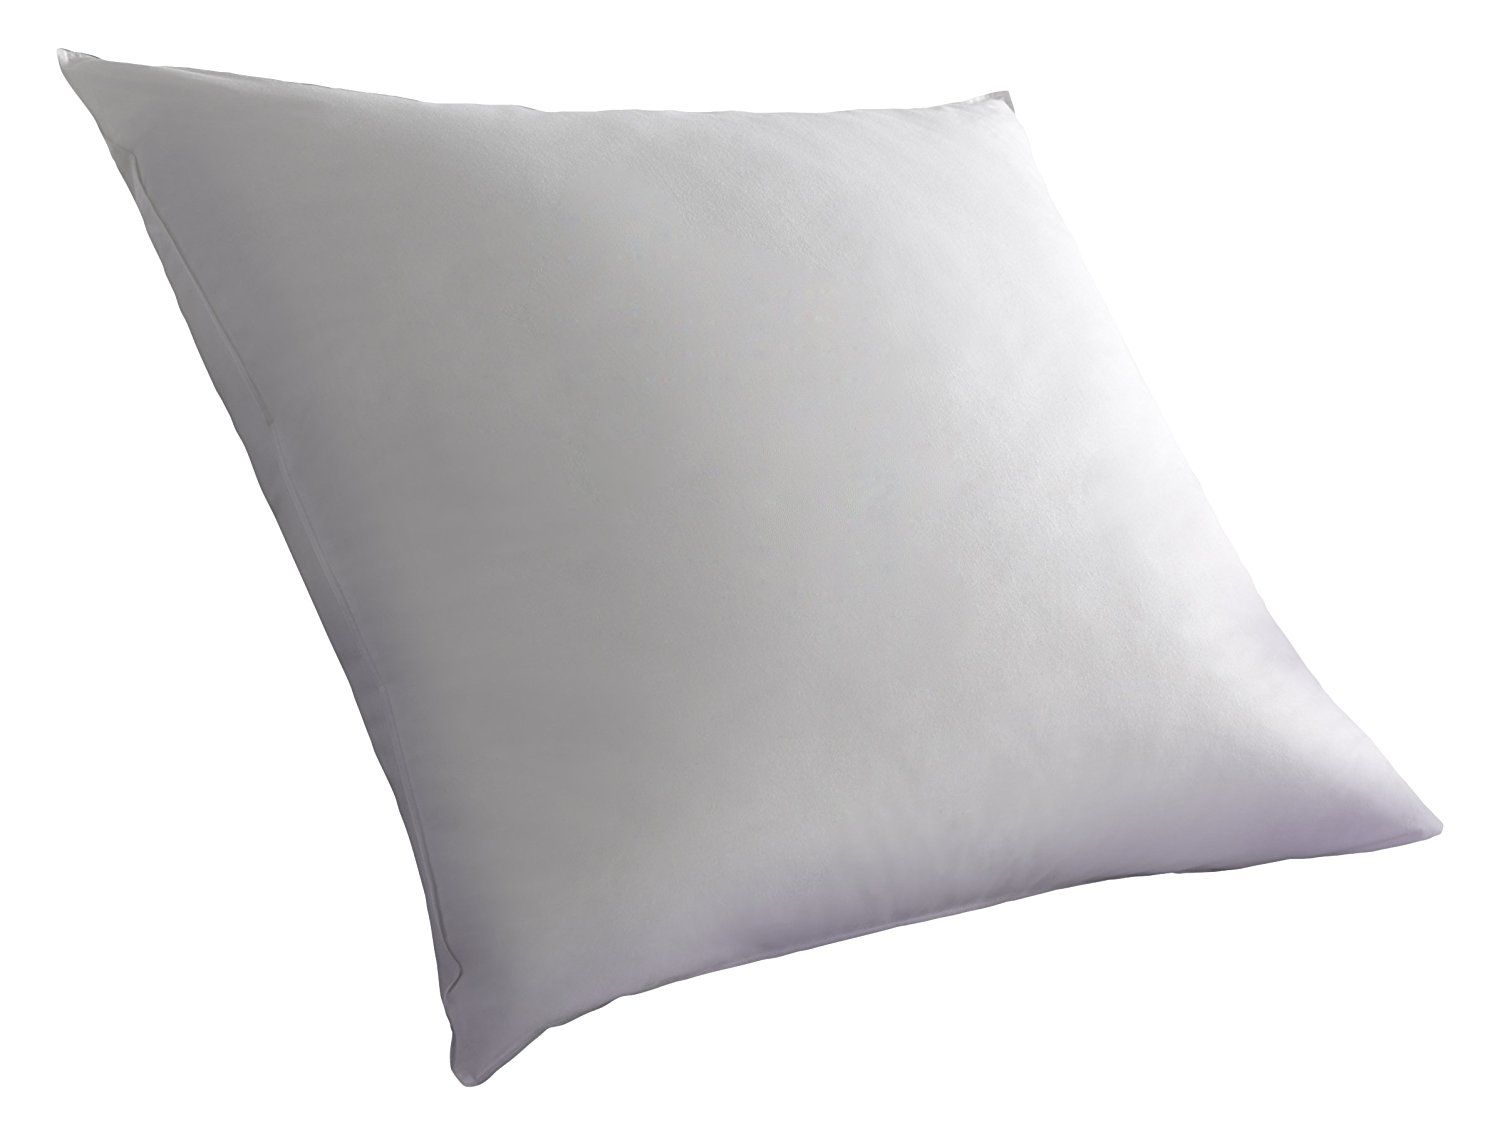 26X26 Pillow Insert Pleasing Pacific Coast Feather Company 25988 Euro Square Feather Pillow Decorating Design